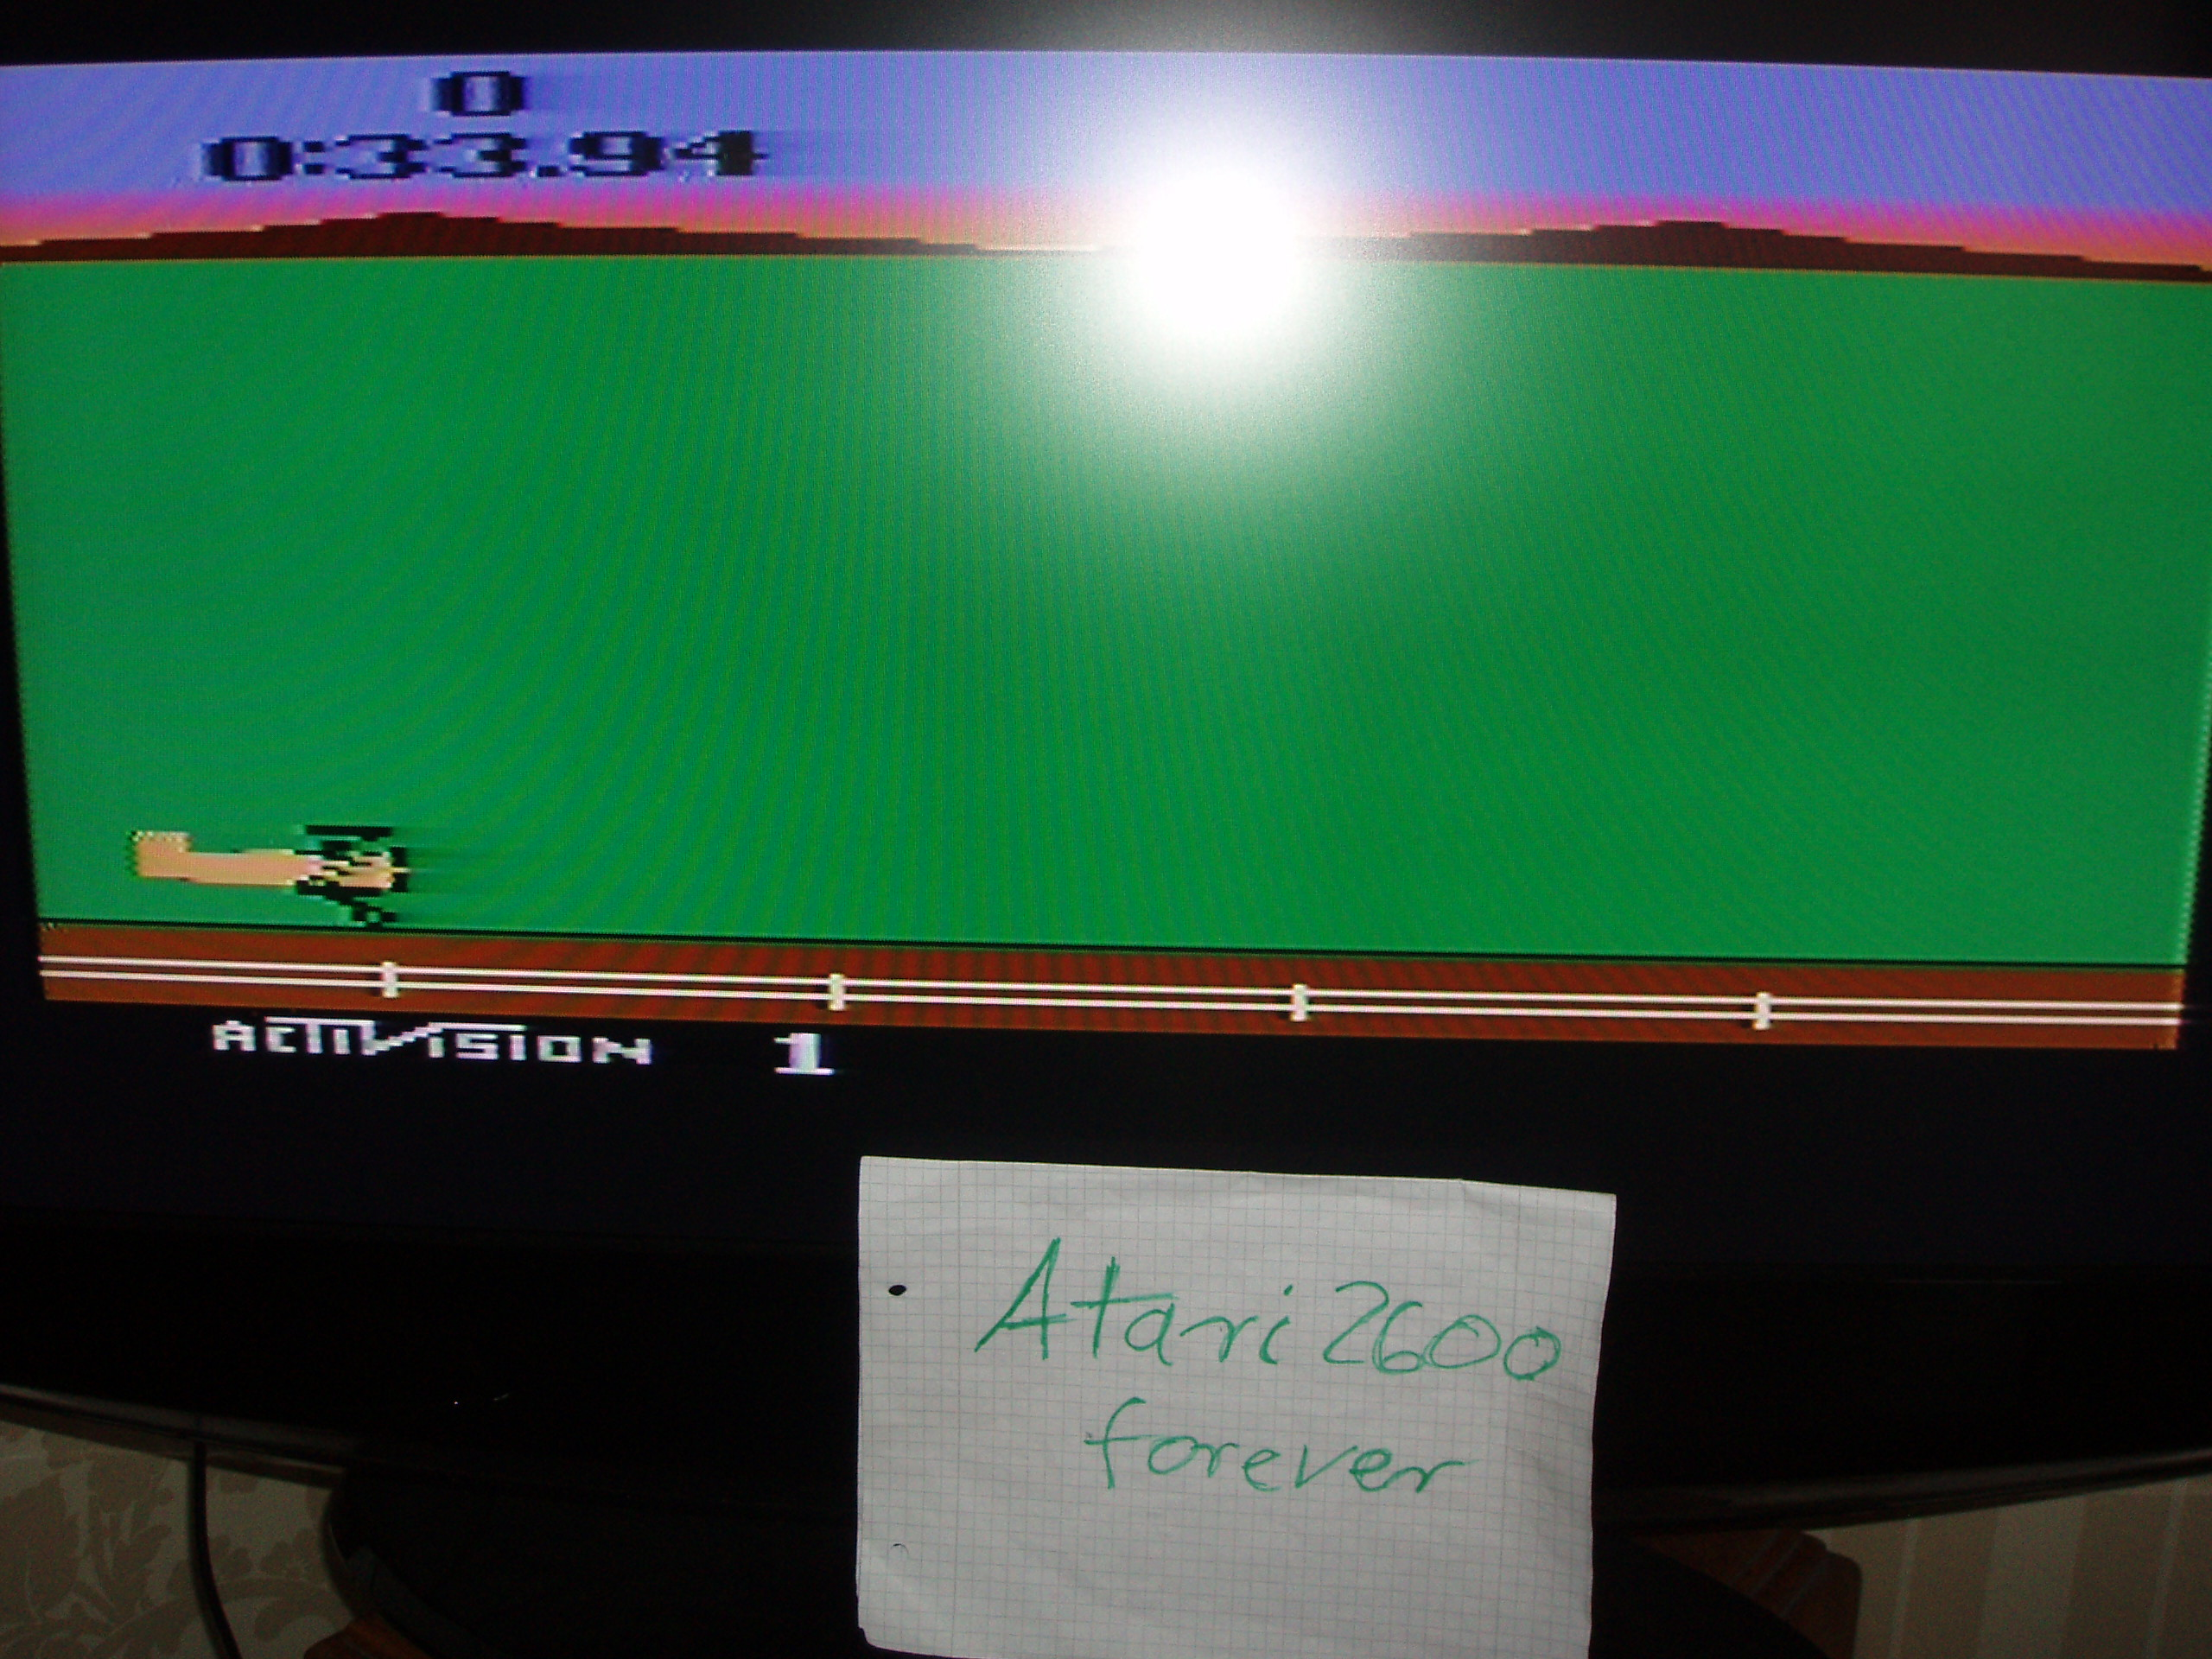 atari2600forever: Barnstorming (Atari 2600 Novice/B) 0:00:33.94 points on 2016-03-21 04:17:48